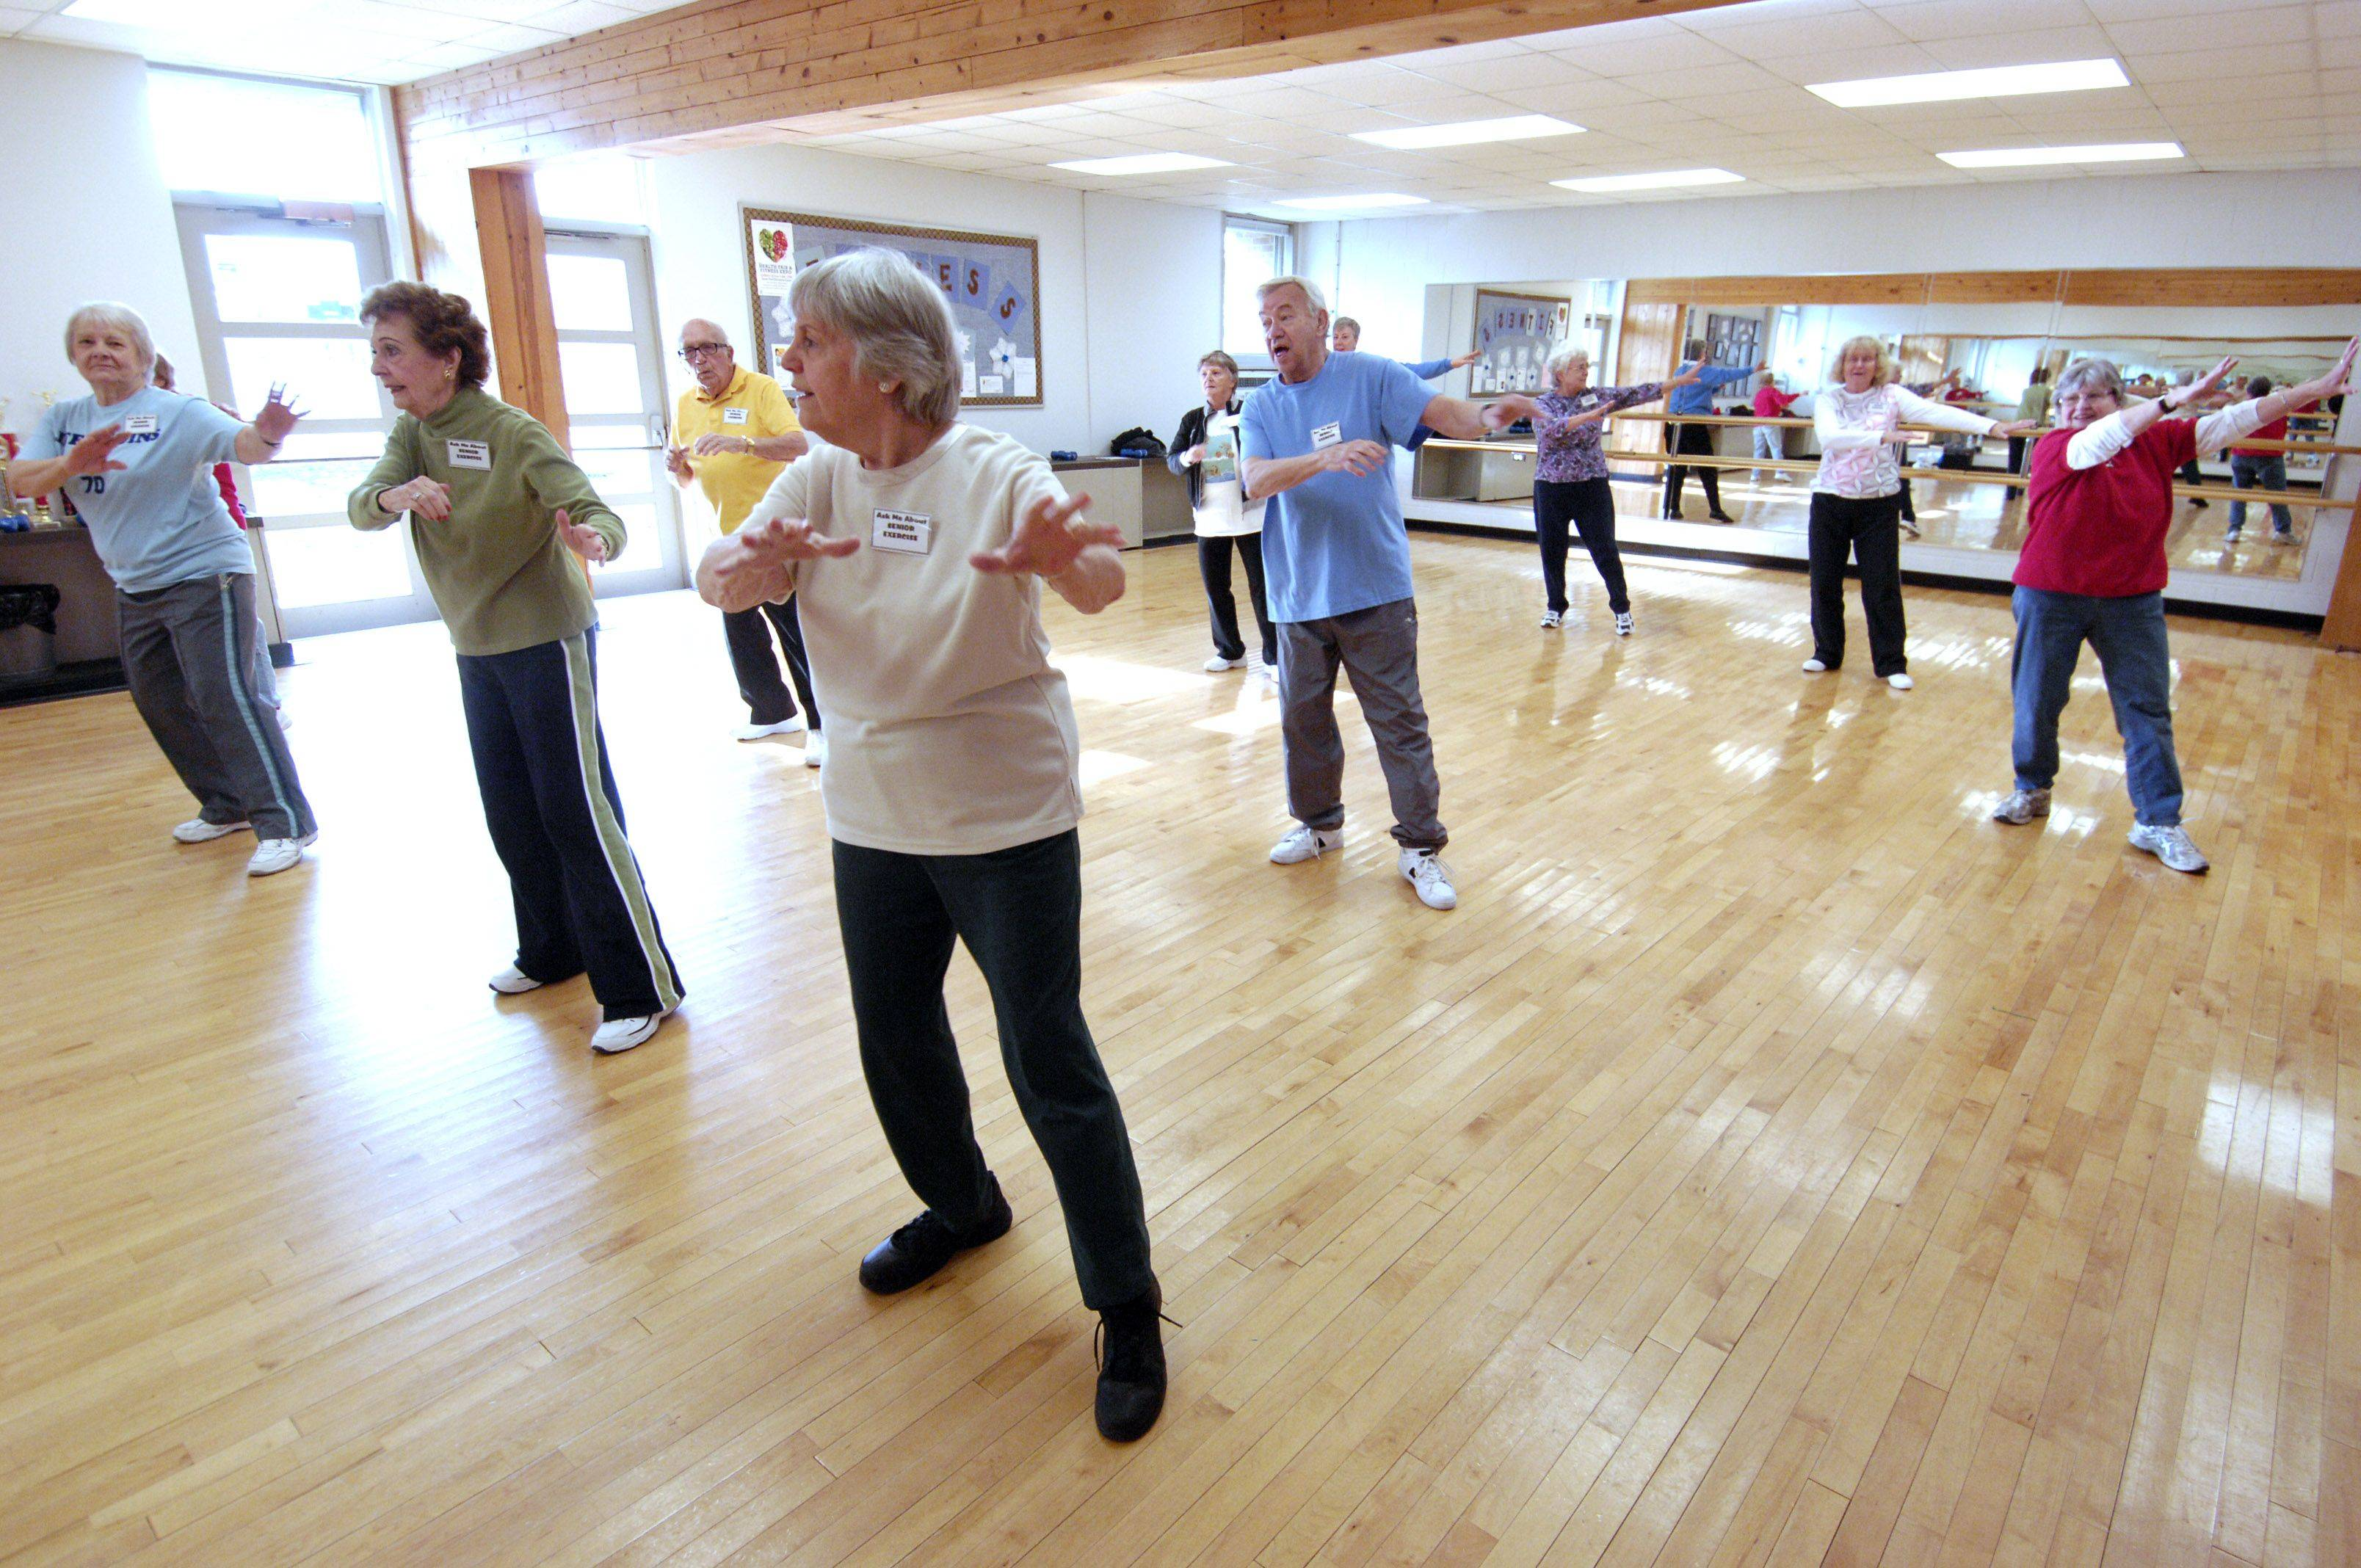 A senior aerobics class was demonstrated during the 2012 Health Fair and Fitness Expo Sunday at the Sunset Knoll Recreation Center in Lombard.